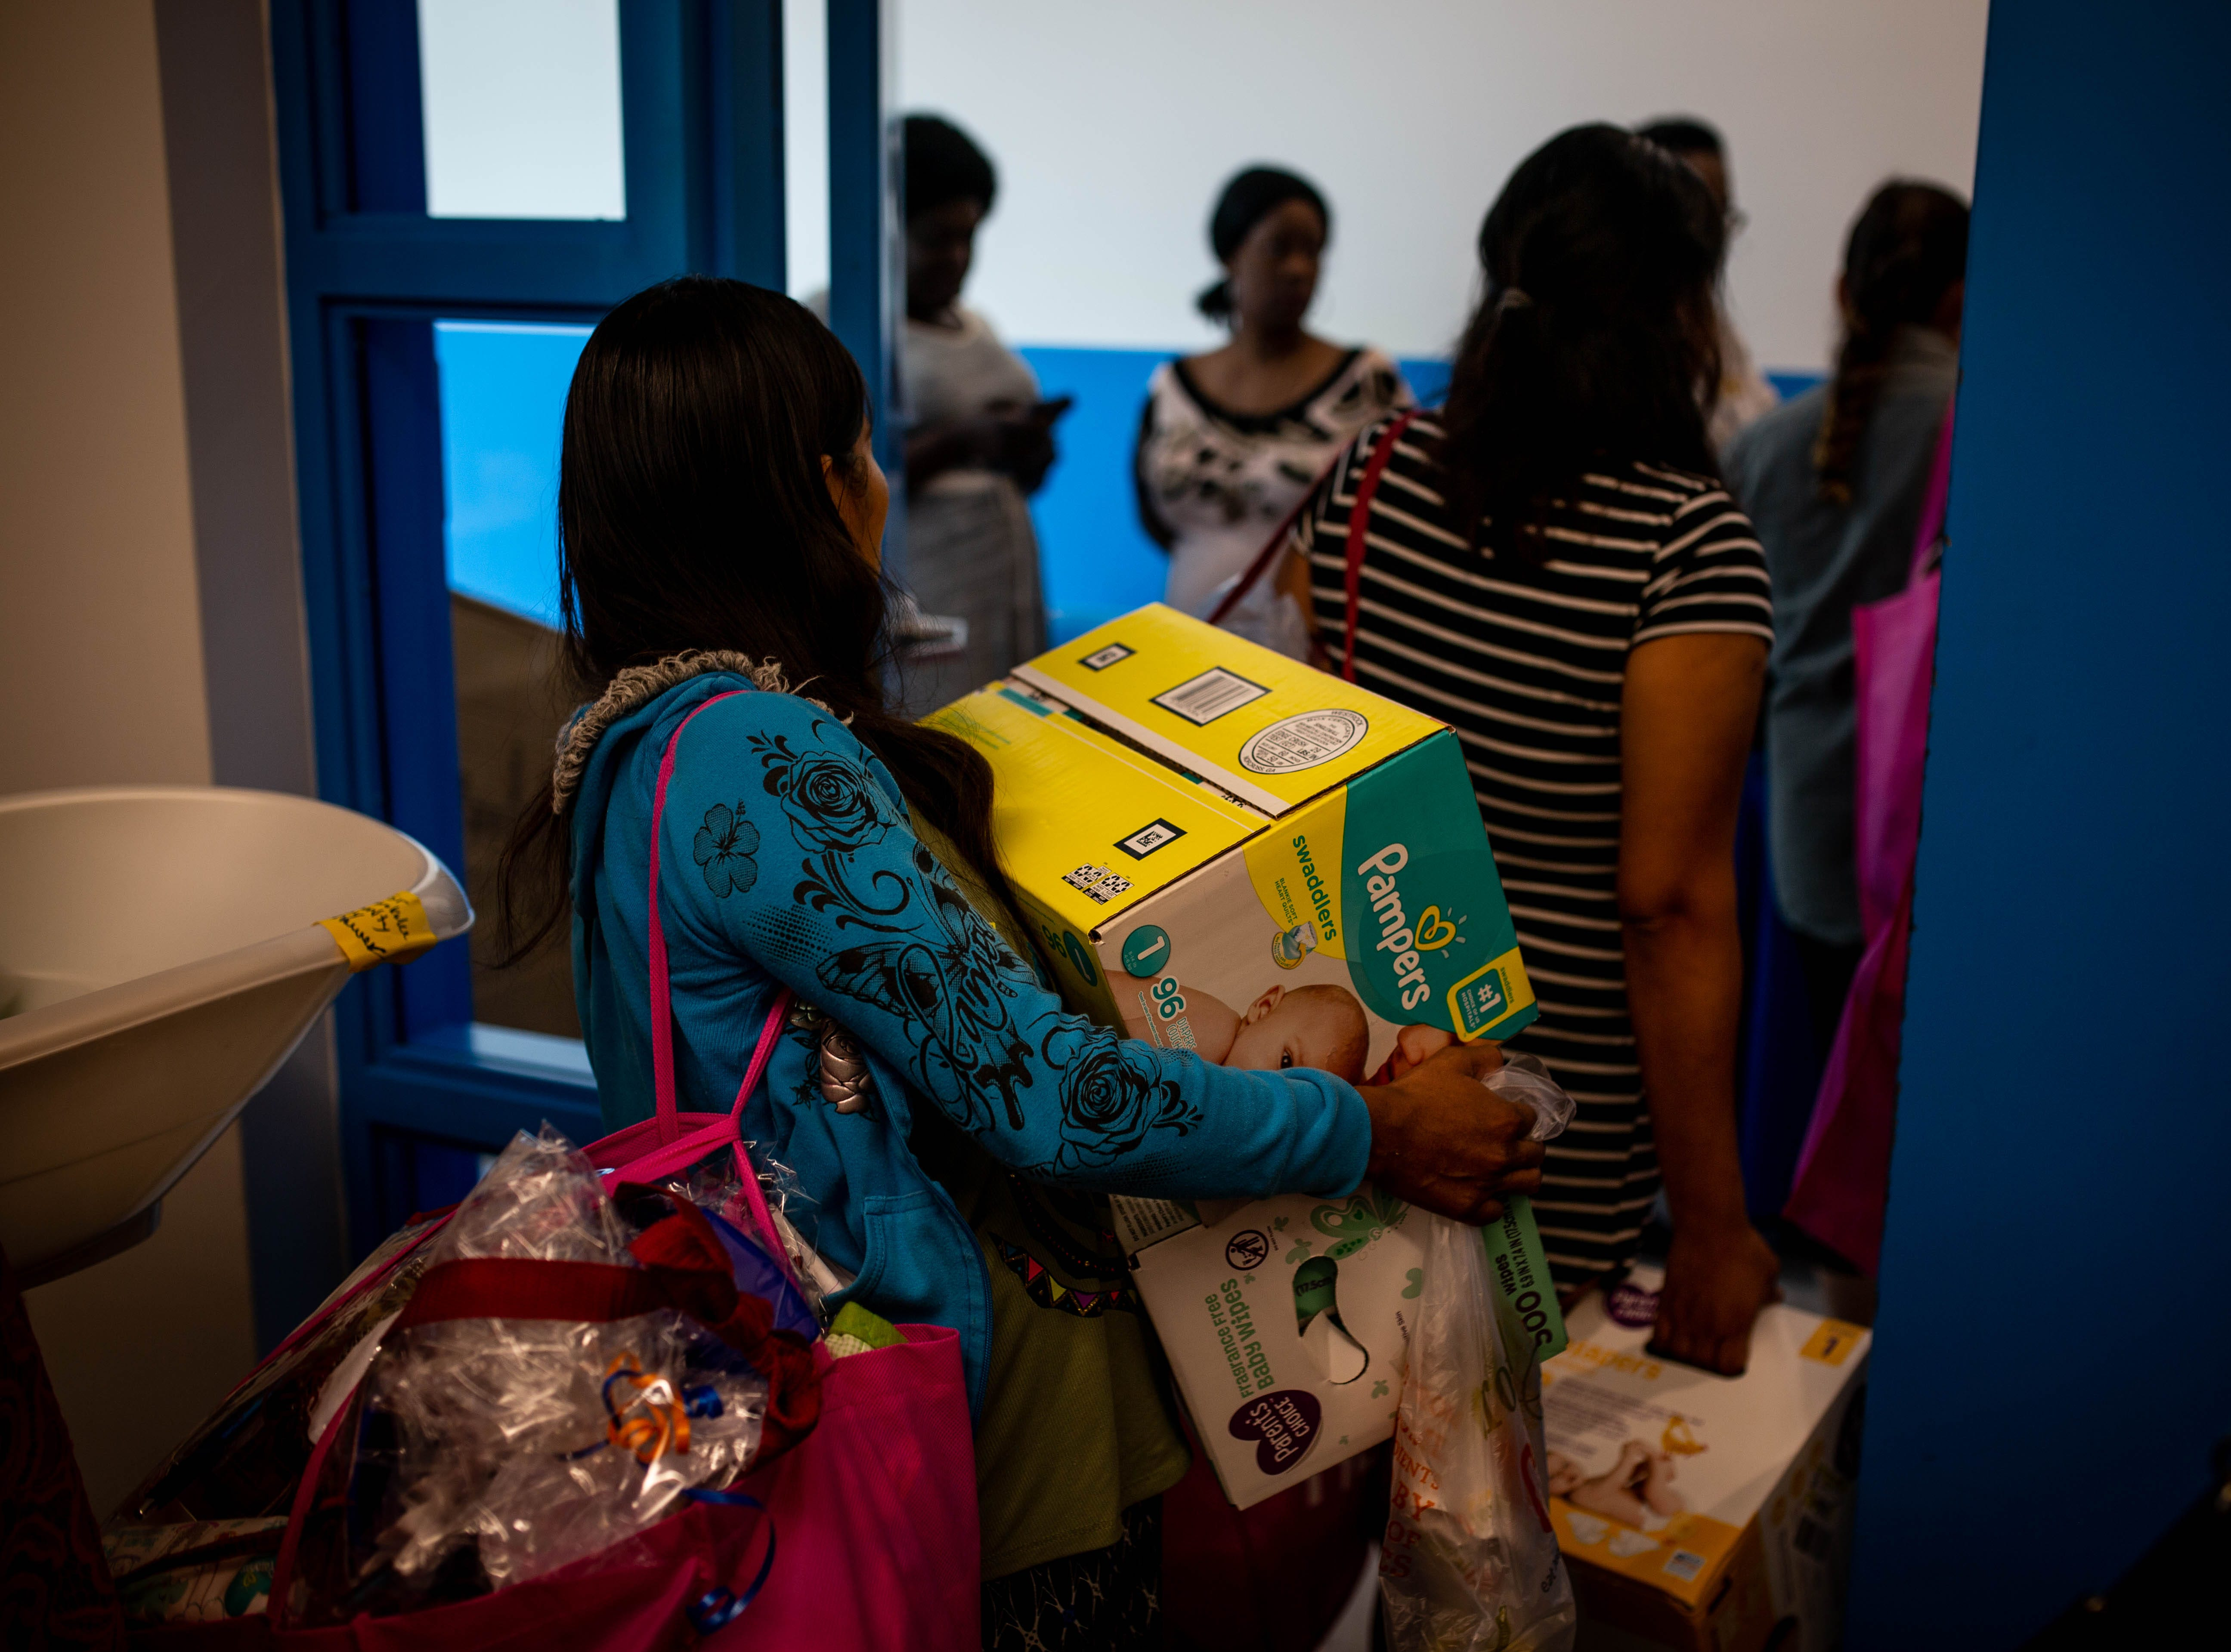 At the end of the shower, attendees leave with their gifts at the Immokalee Community Baby Shower at the Boys & Girls Club in Immokalee on Thursday, May 9, 2019.